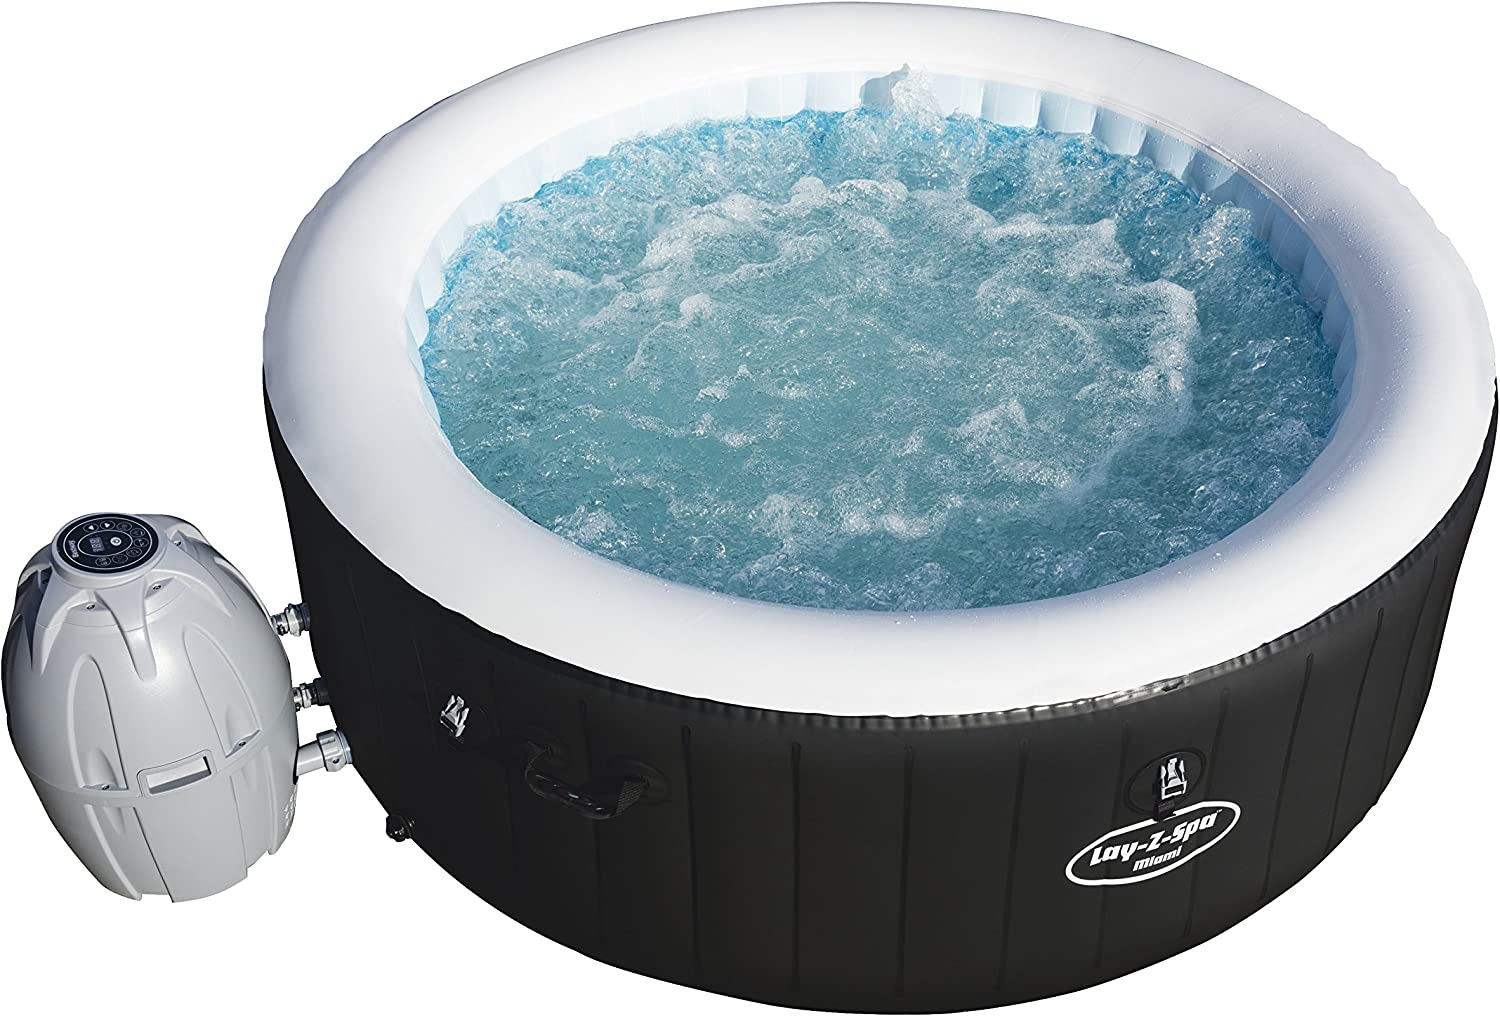 Bestway Lay- Z-Spa Miami 54123 - Spa Hinchable para 2-4 Personas: Amazon.es: Jardín